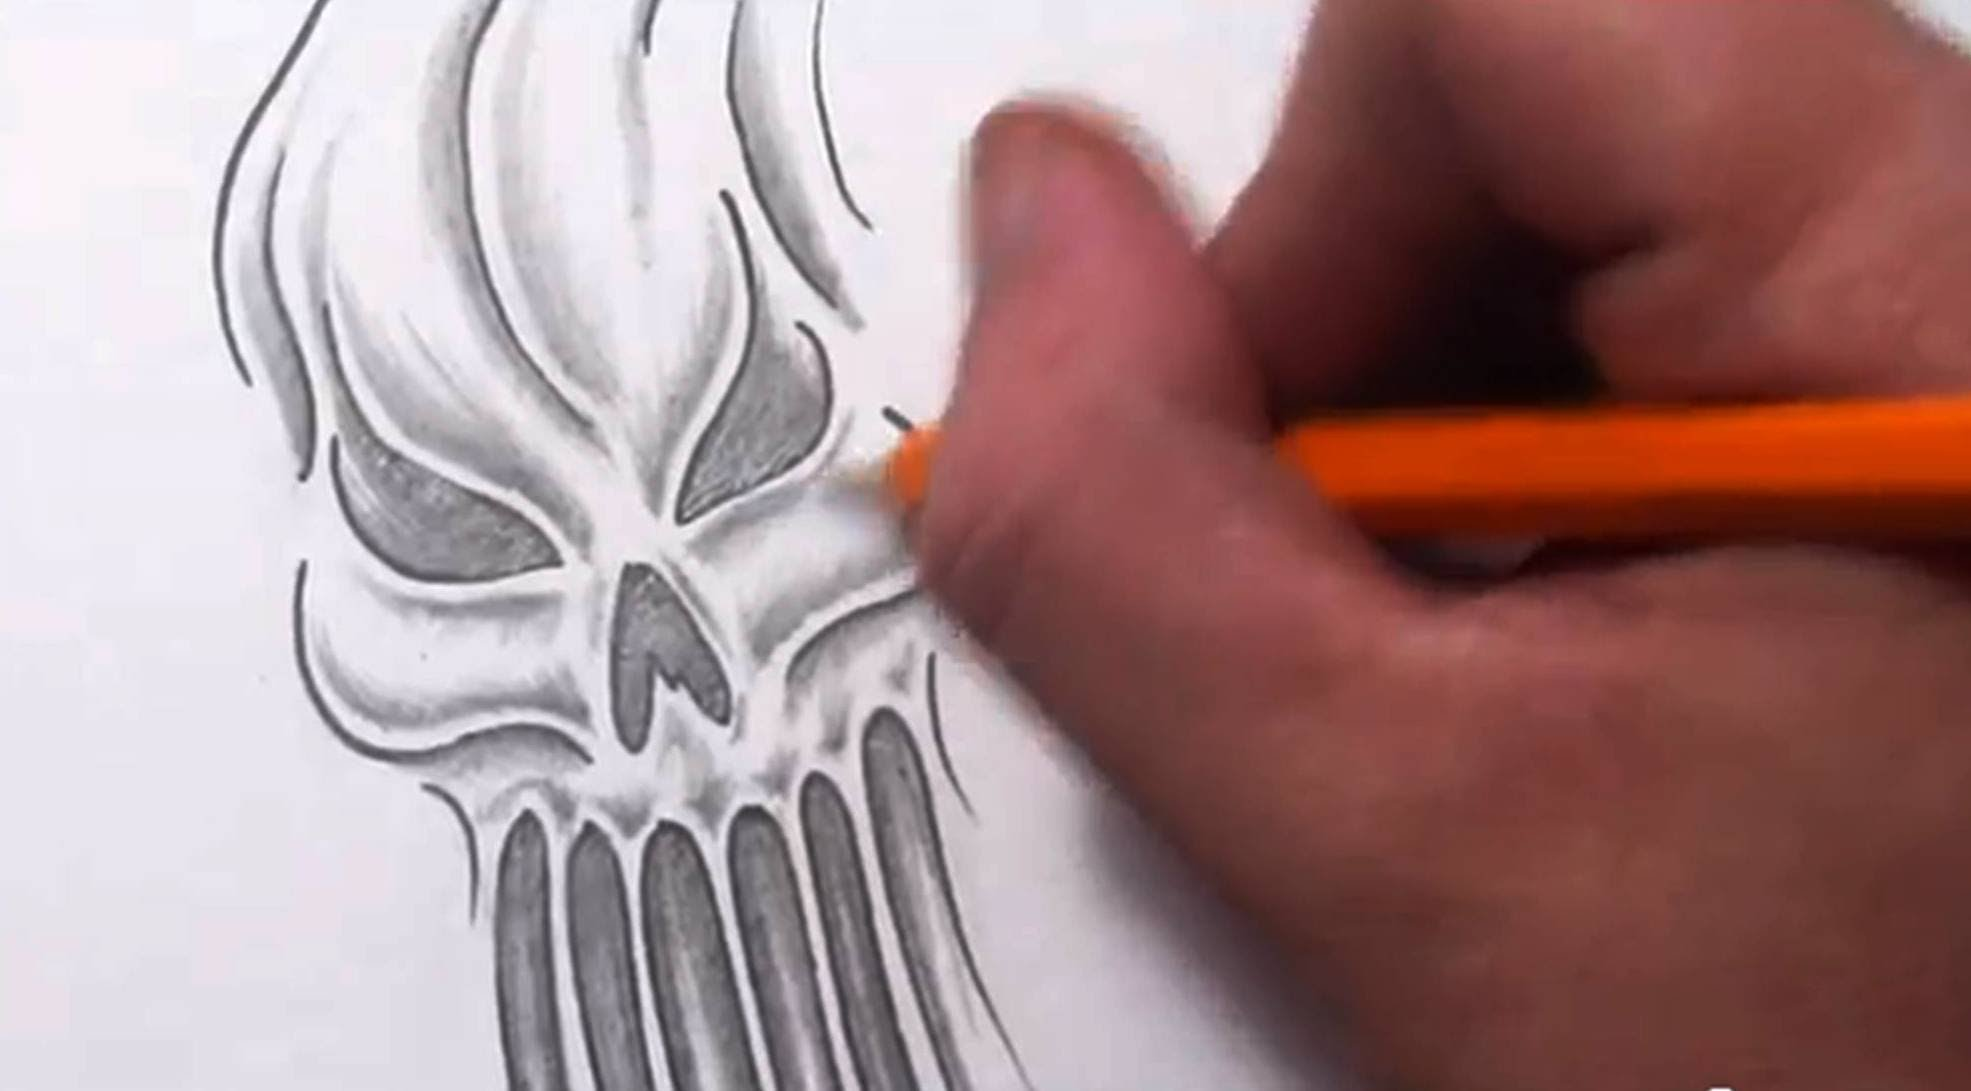 Drawn skull ghost Skull or Unsubscribe an Draw